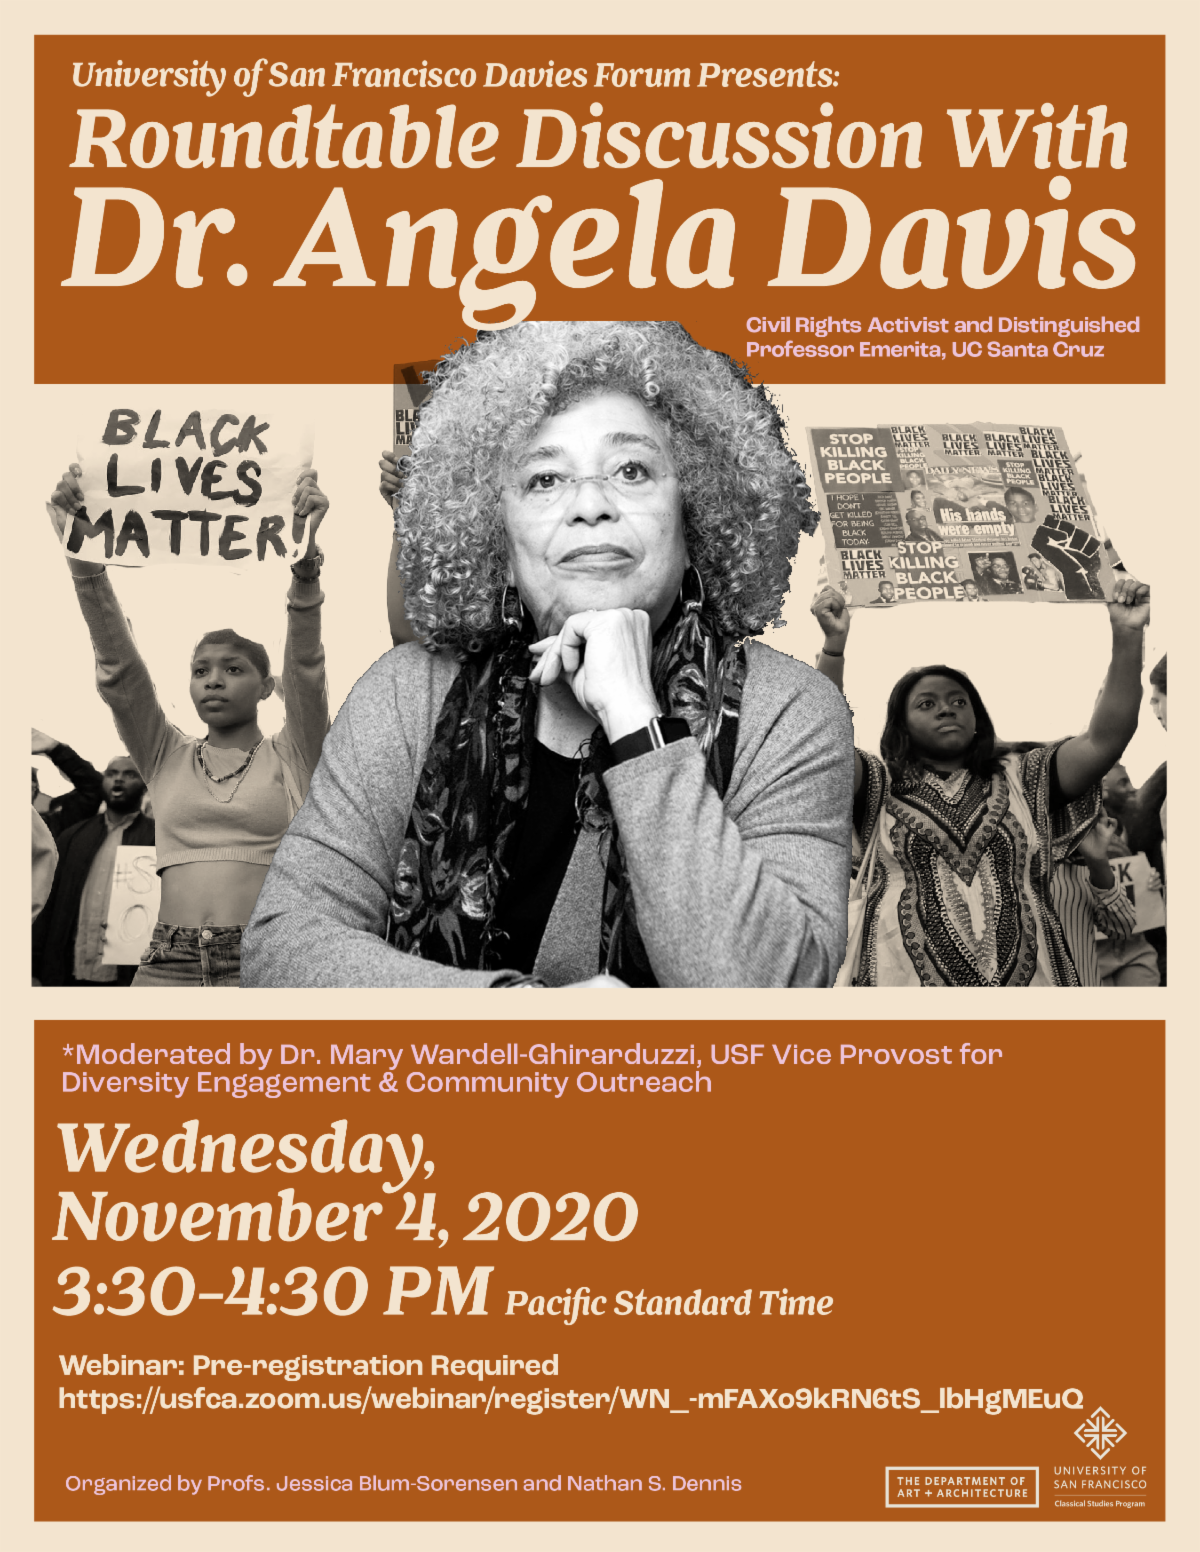 promo flyer for roundtable with Angela Davis at USF November 4